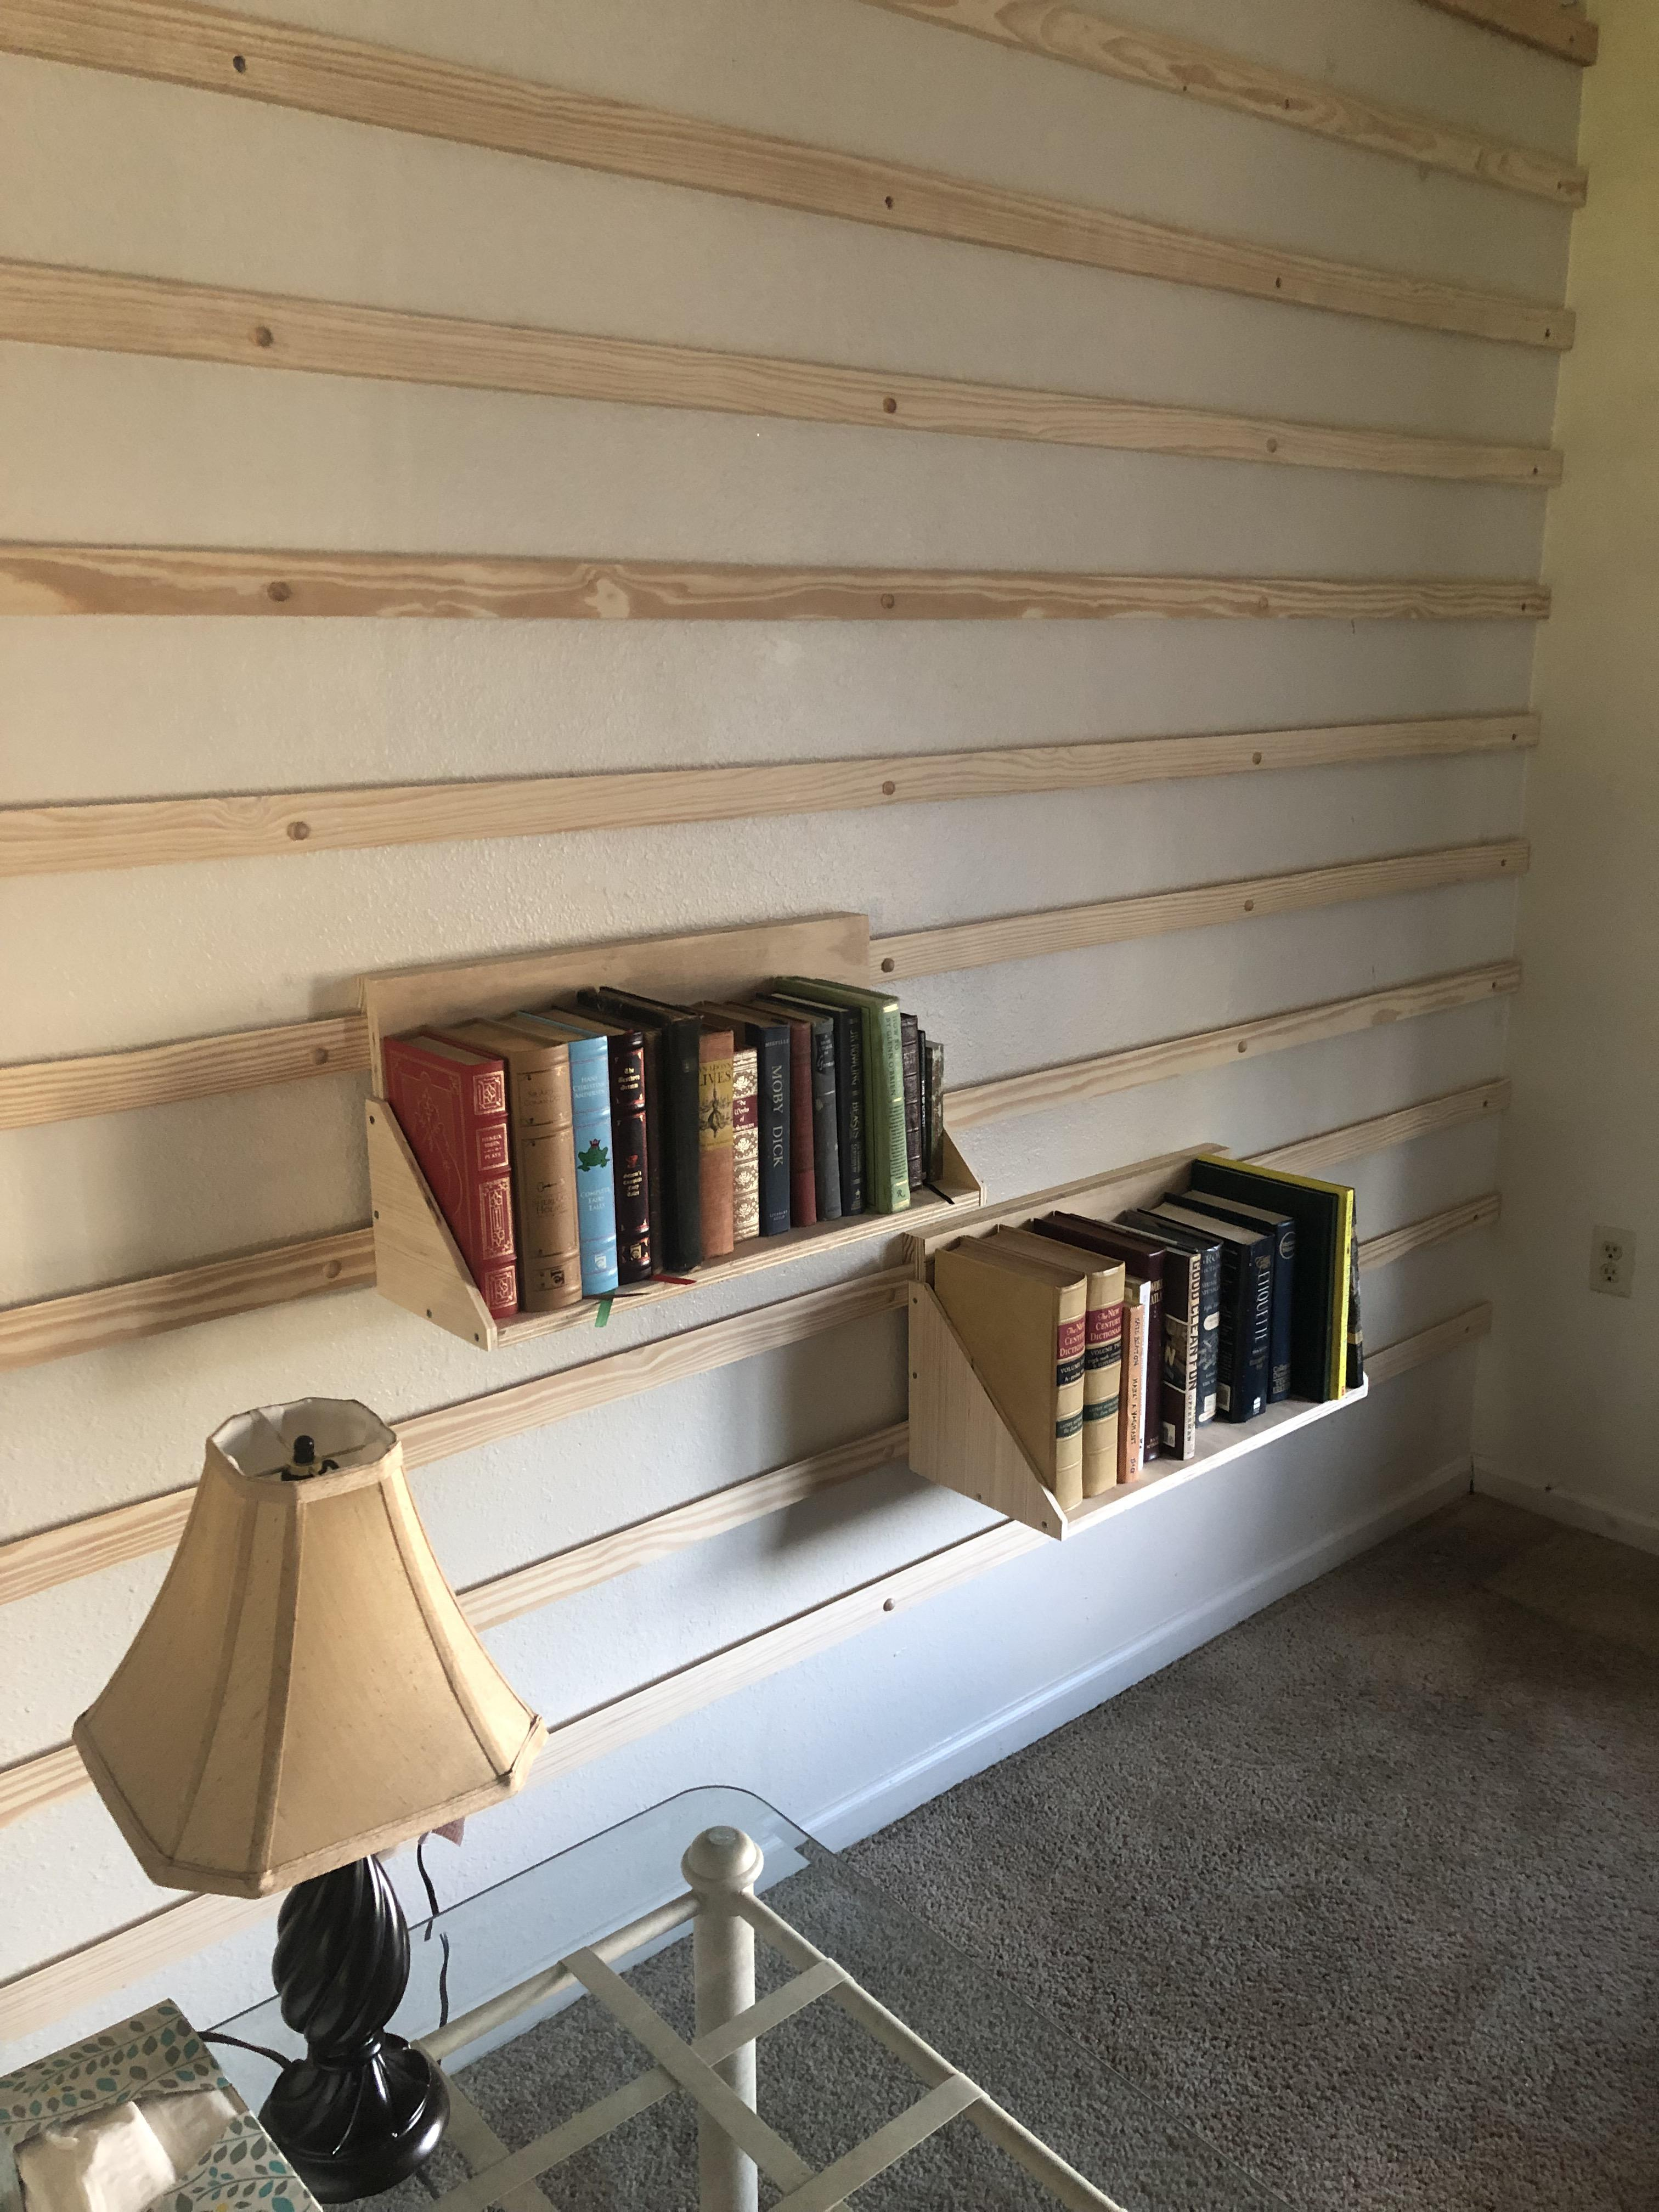 Wip Whole Wall French Cleat Bookshelves - Woodworking